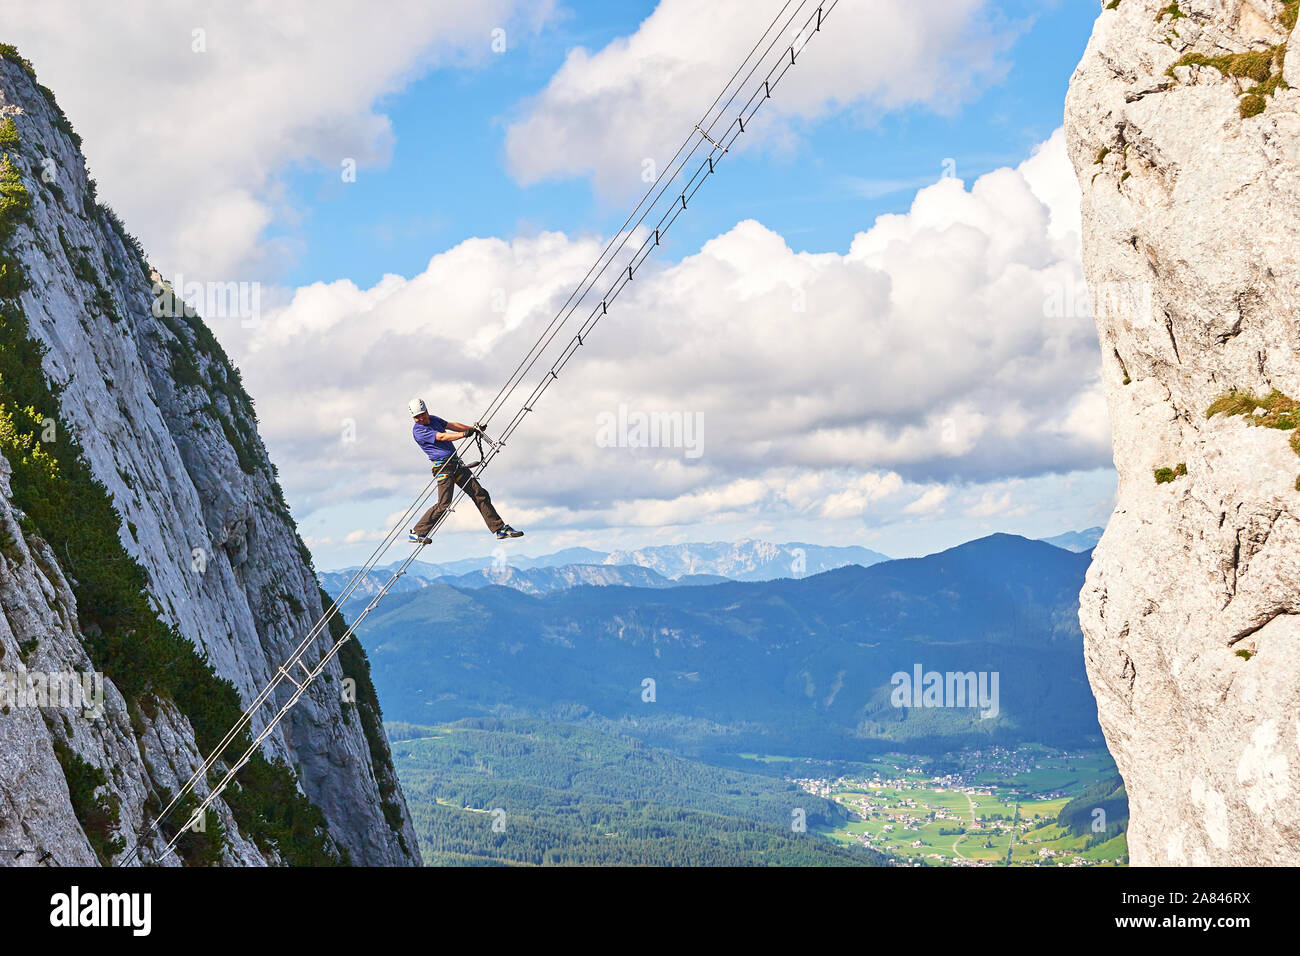 Man posing on Donnerkogel Intersport via ferrata (klettersteig) ladder, with his leg  hanging out, on a bright sunny day. Stock Photo